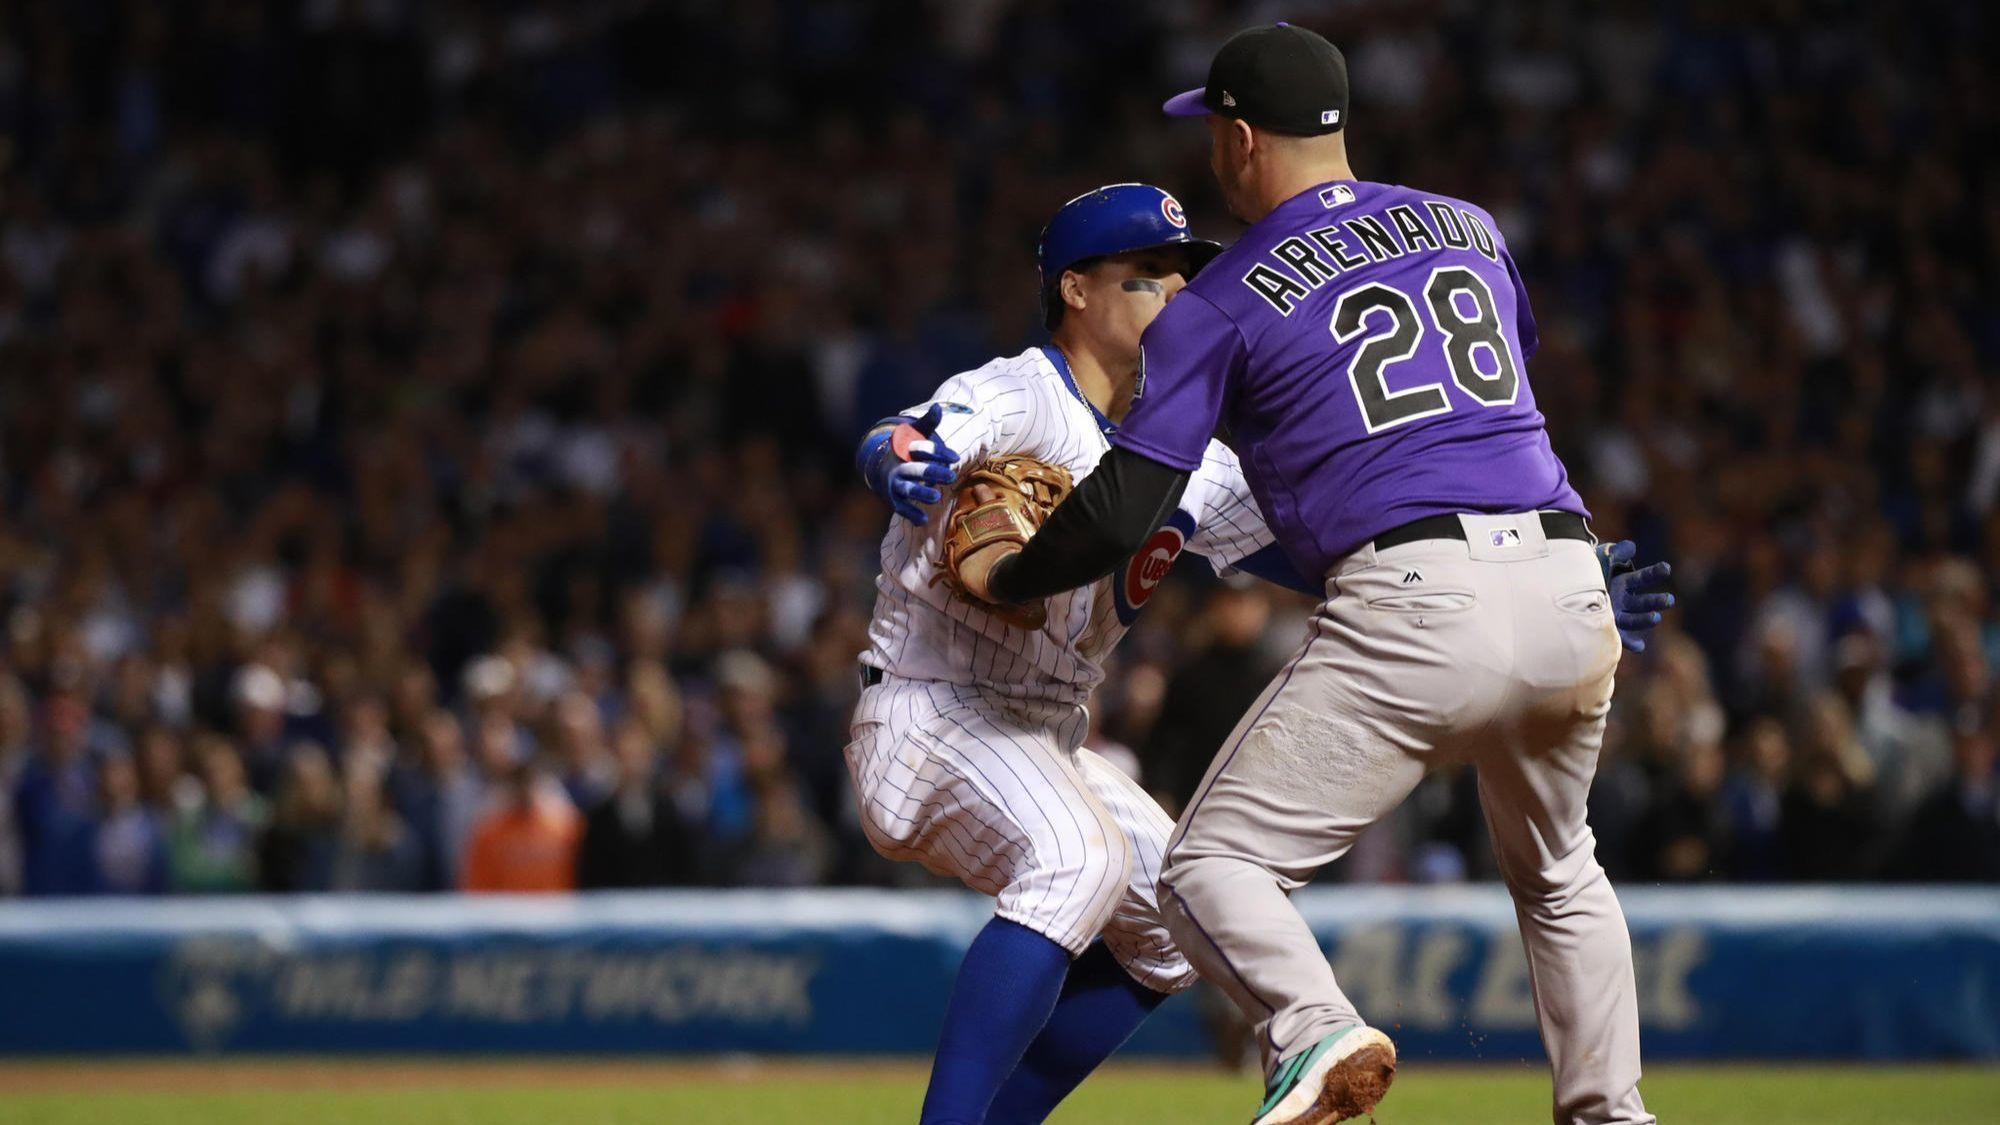 ESPN's Alex Rodriguez lecturing Javier Baez on baserunning rules? That's hilarious.